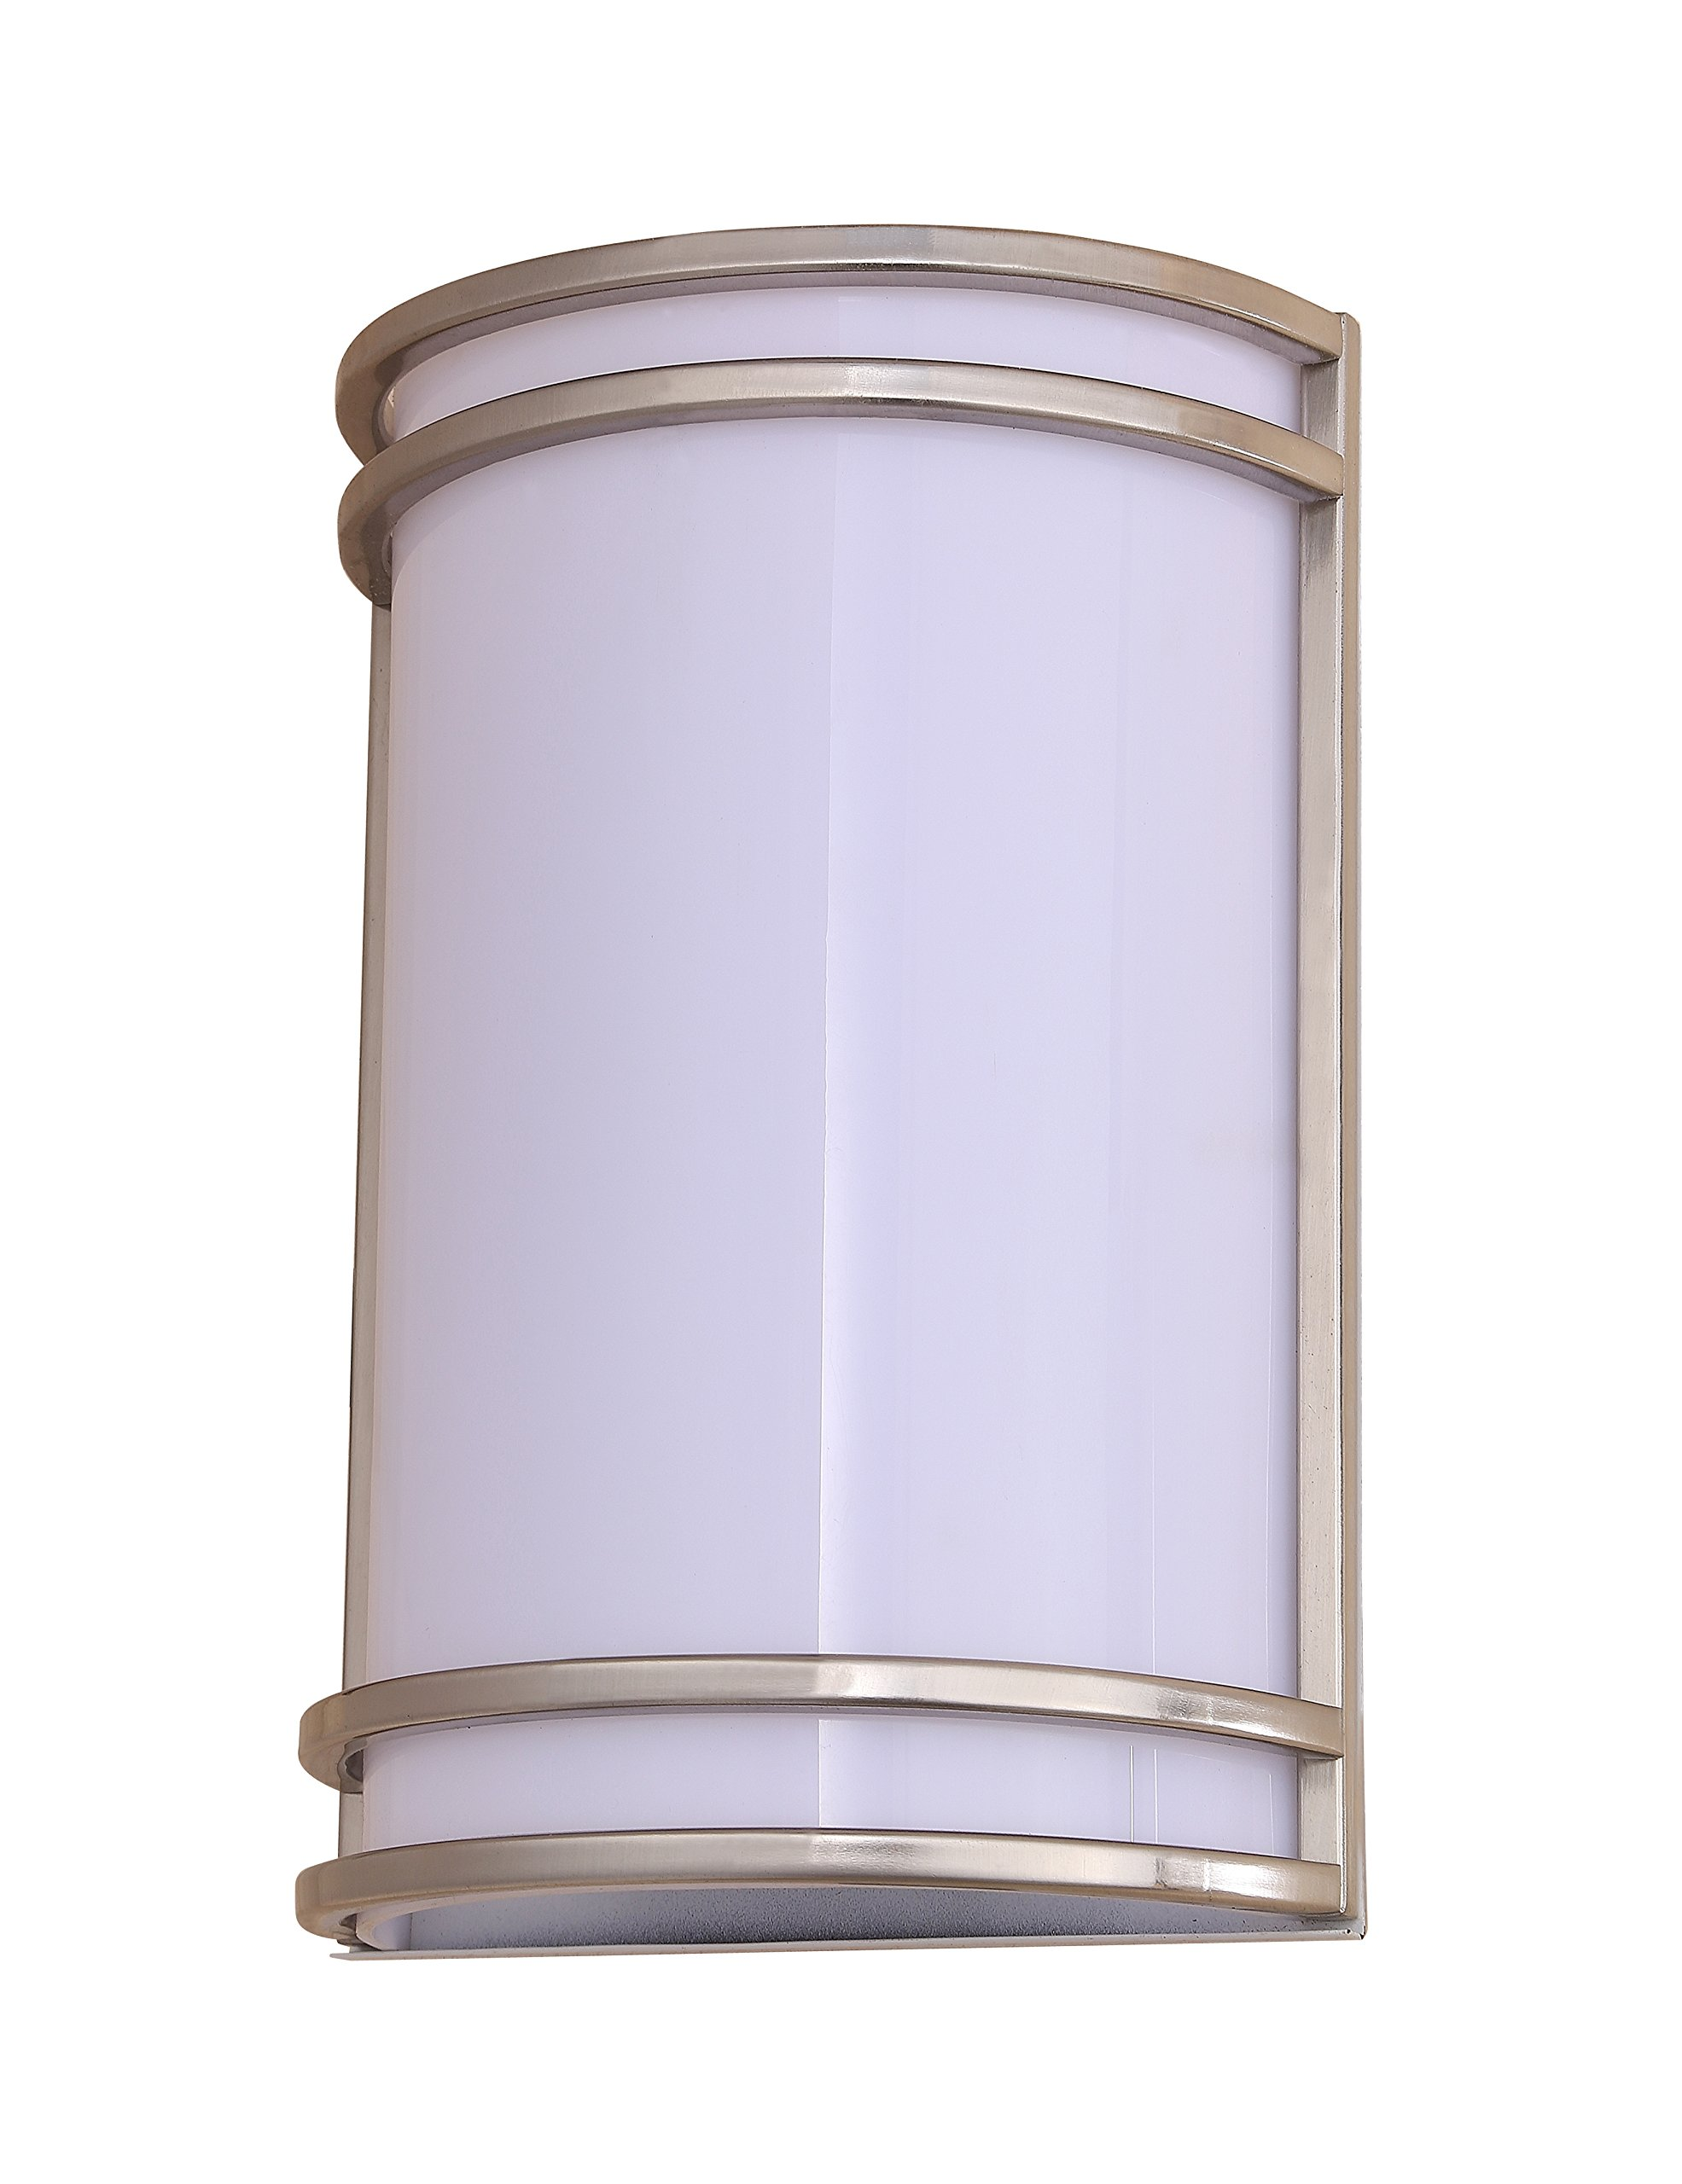 LB75110 15W LED Outdoor Wall Sconce Lighting, 10-Inch Half Cylinder Shaped, Antique Brushed Nickel, 5000K Daylight, 800 Lumens, Waterproof and Outdoor Rated ETL, Dimmable